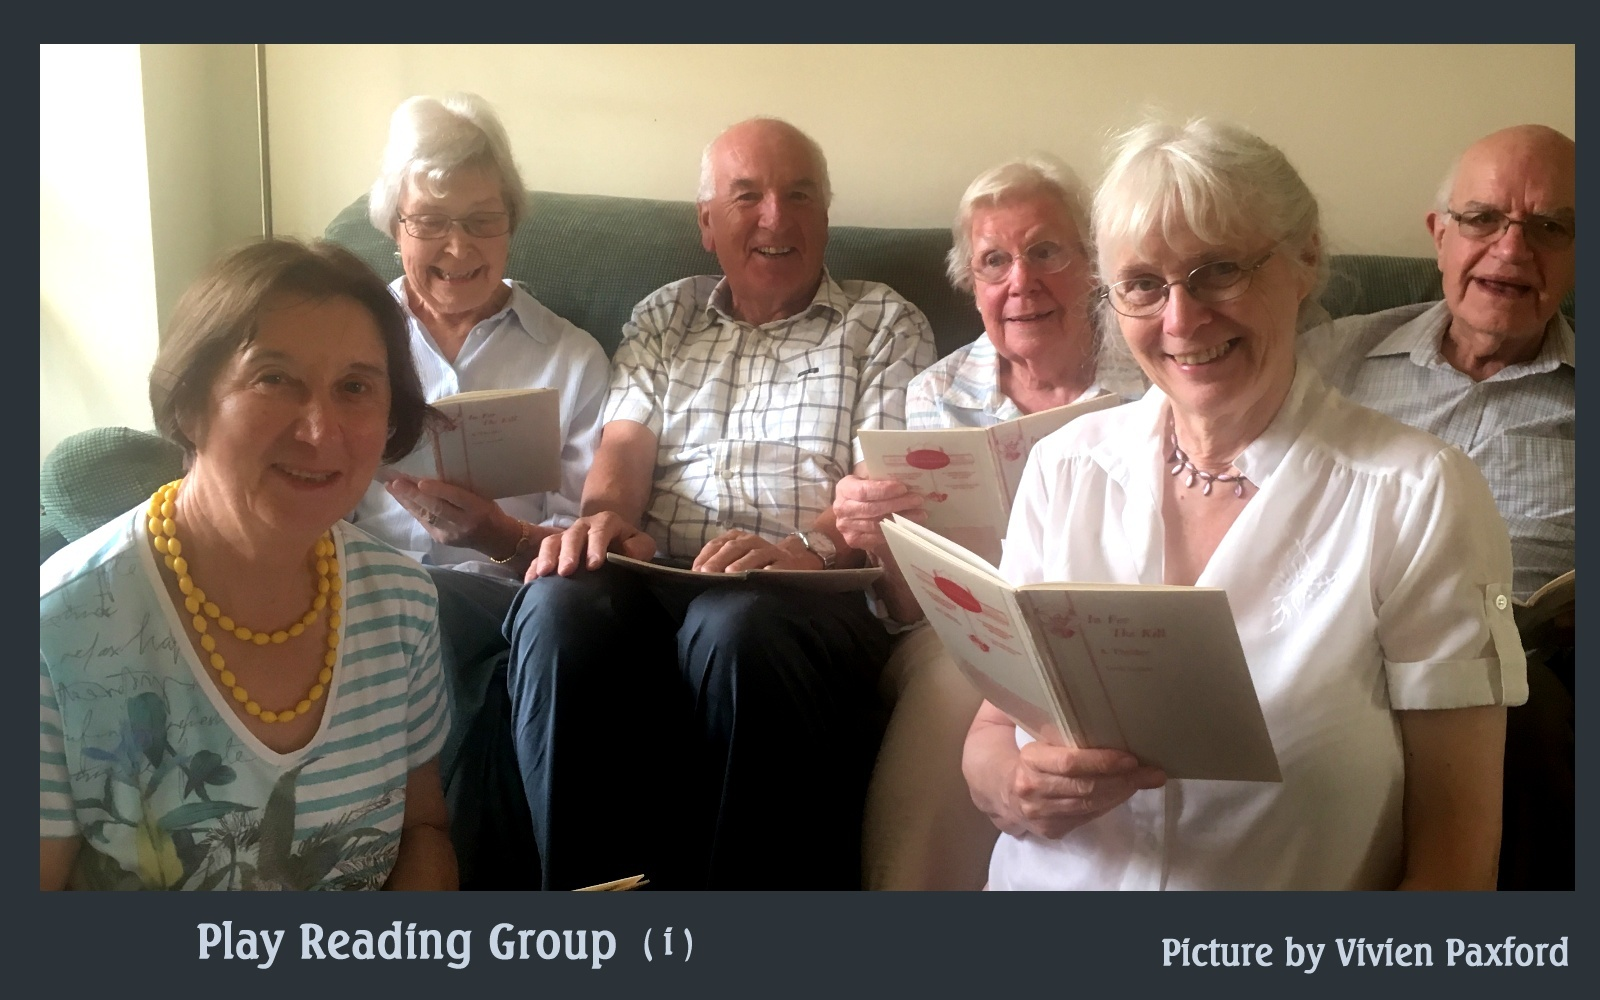 Play Reading Group